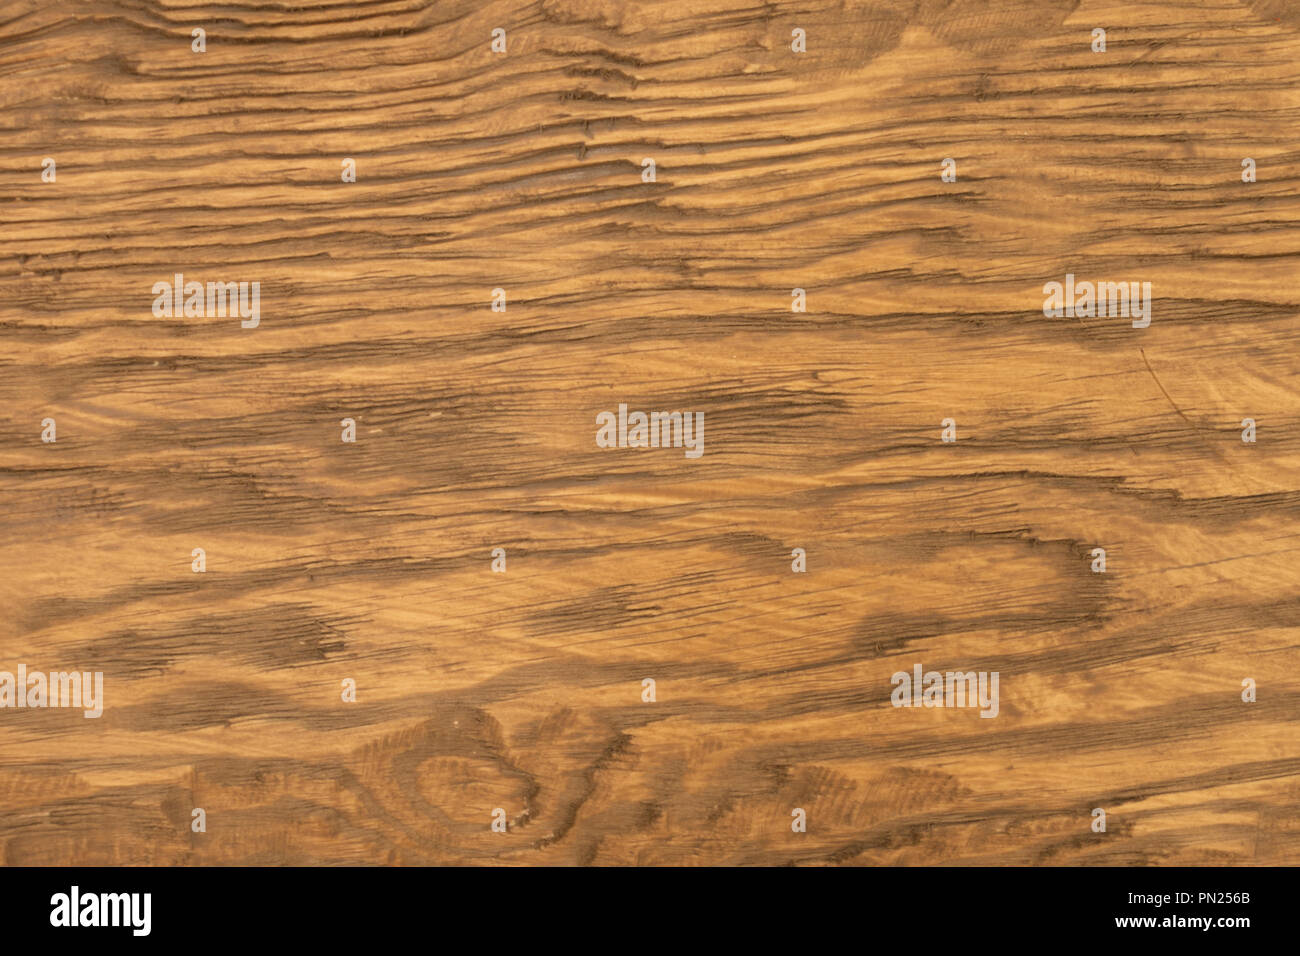 Wood Texture Of Brushed Pine Boards With Knots Abstract